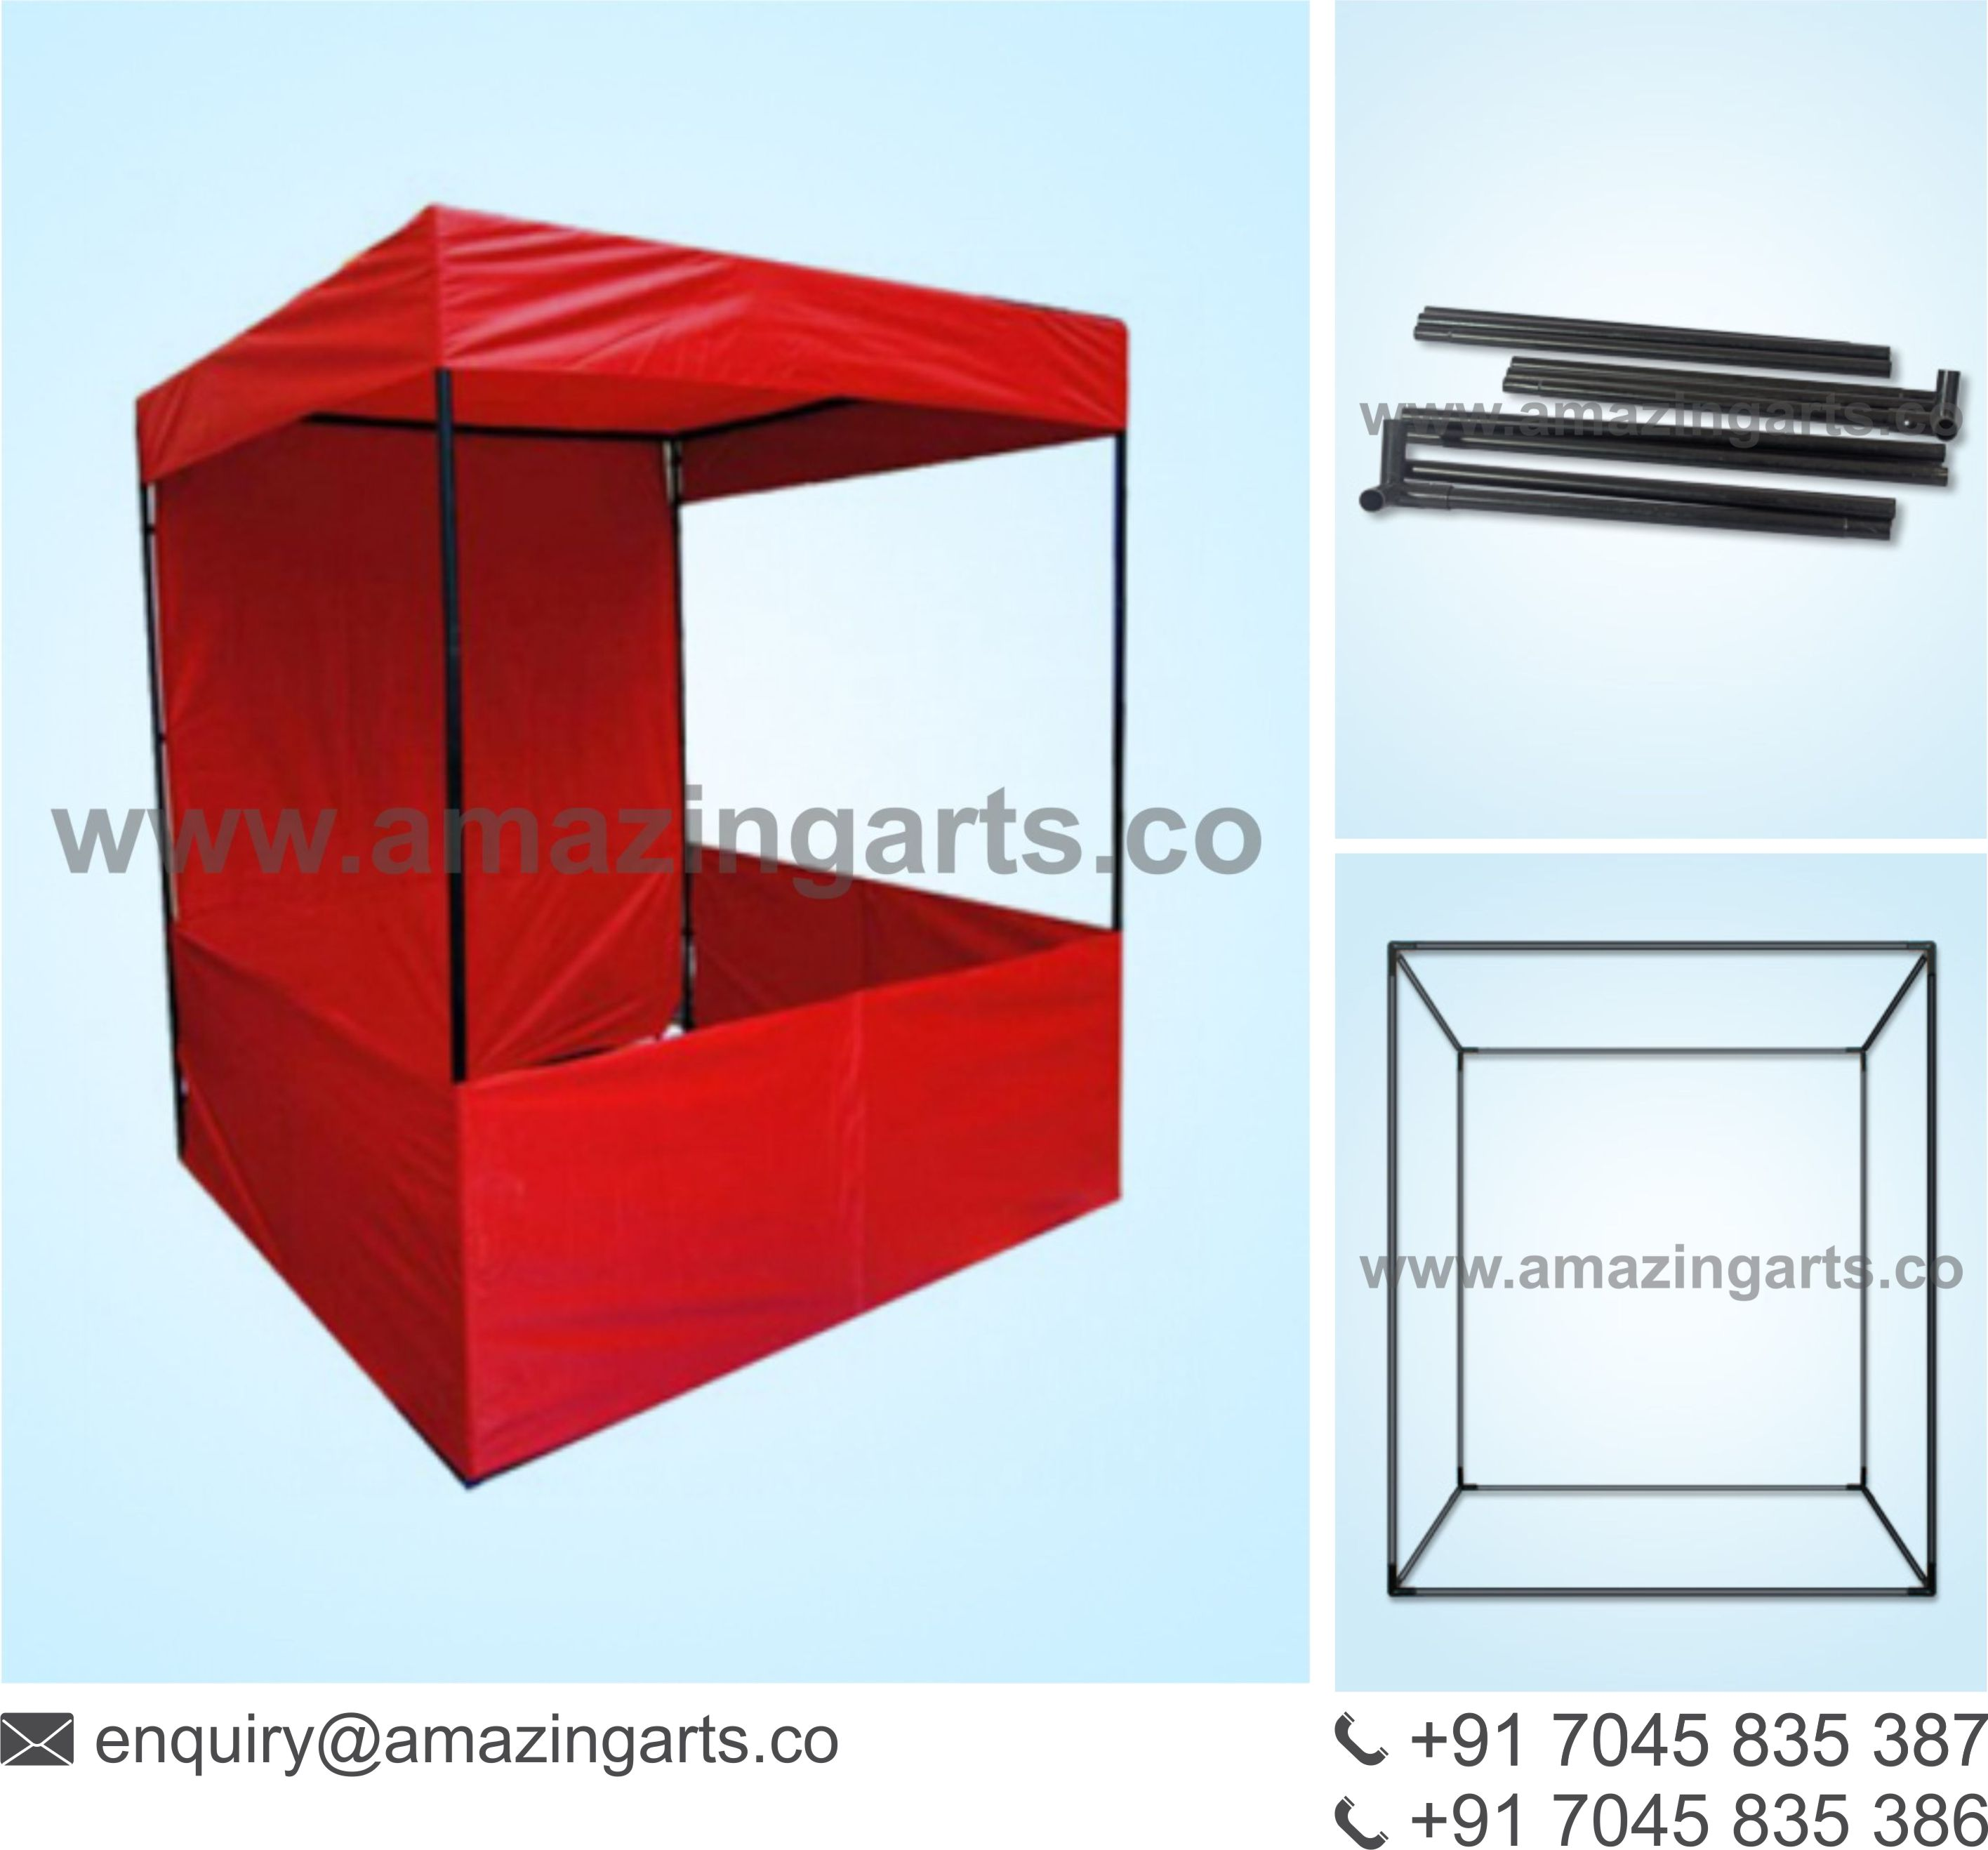 Exhibition Stall Size : Portable exhibition stall portable exhibition kit popup kit